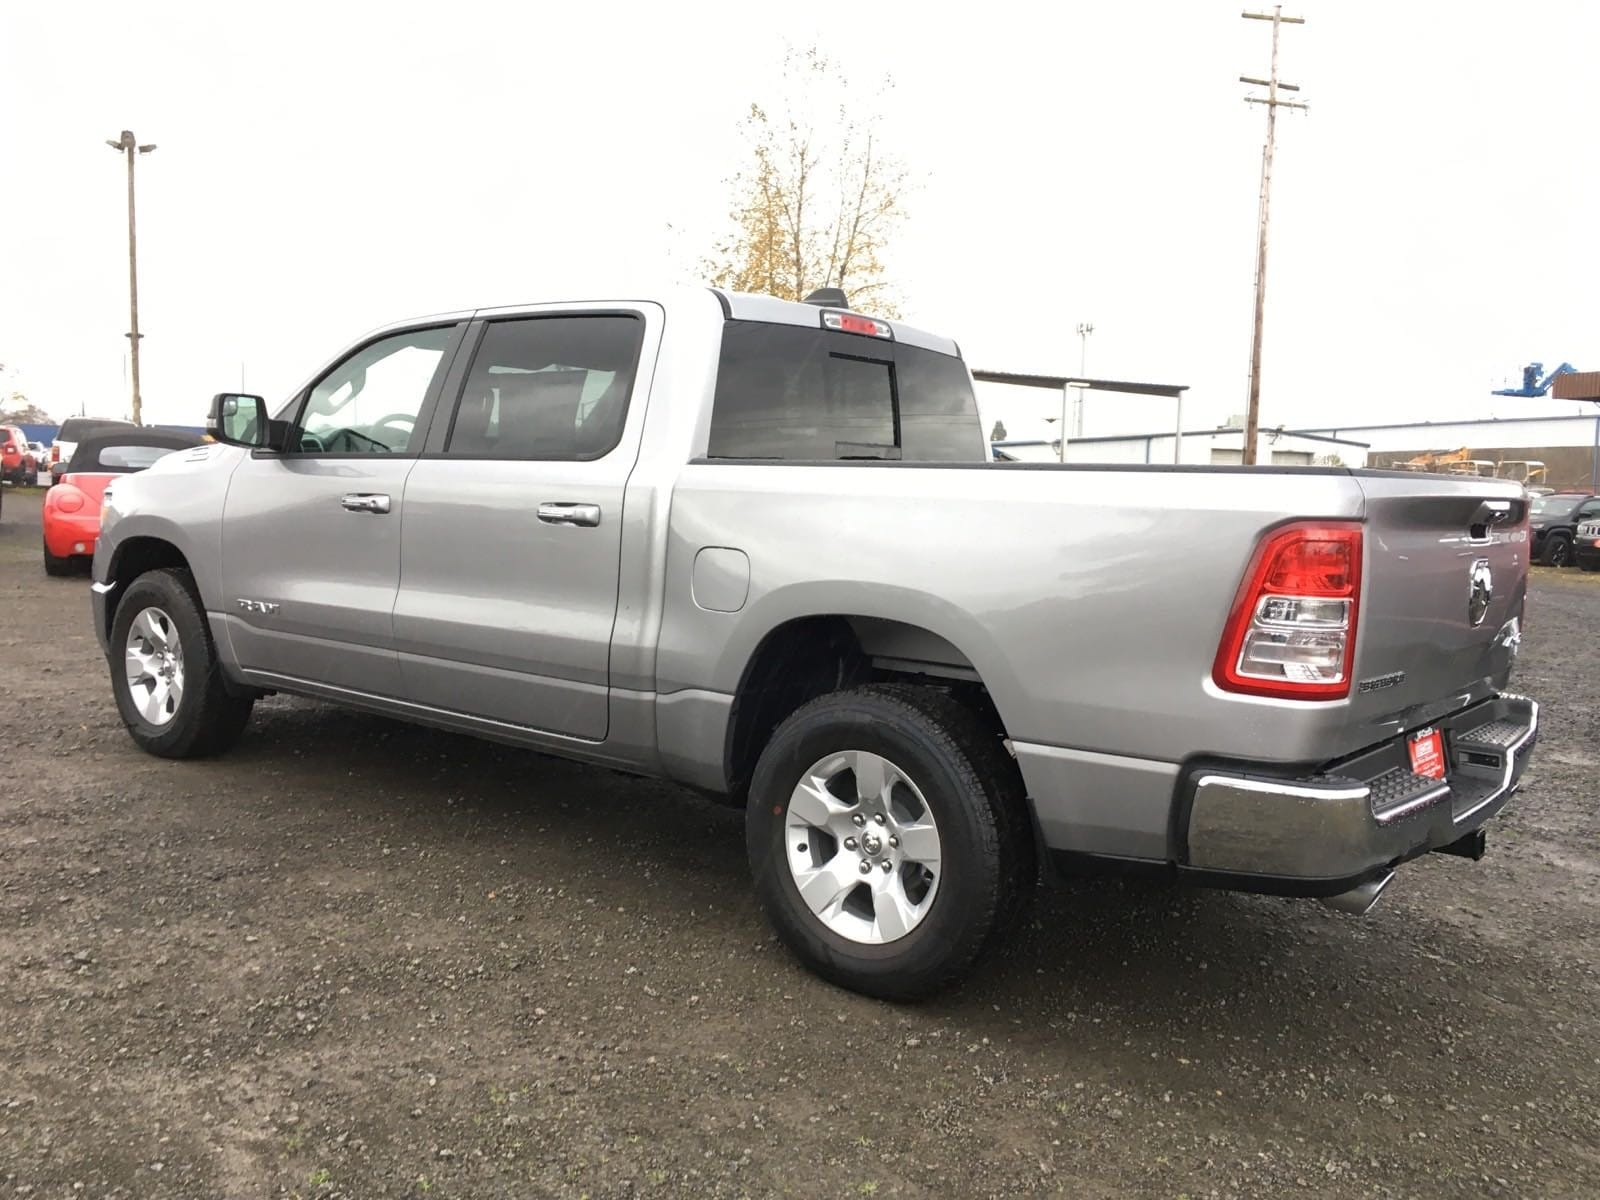 2020 Ram 1500 Crew Cab 4x4, Pickup #R1928 - photo 1